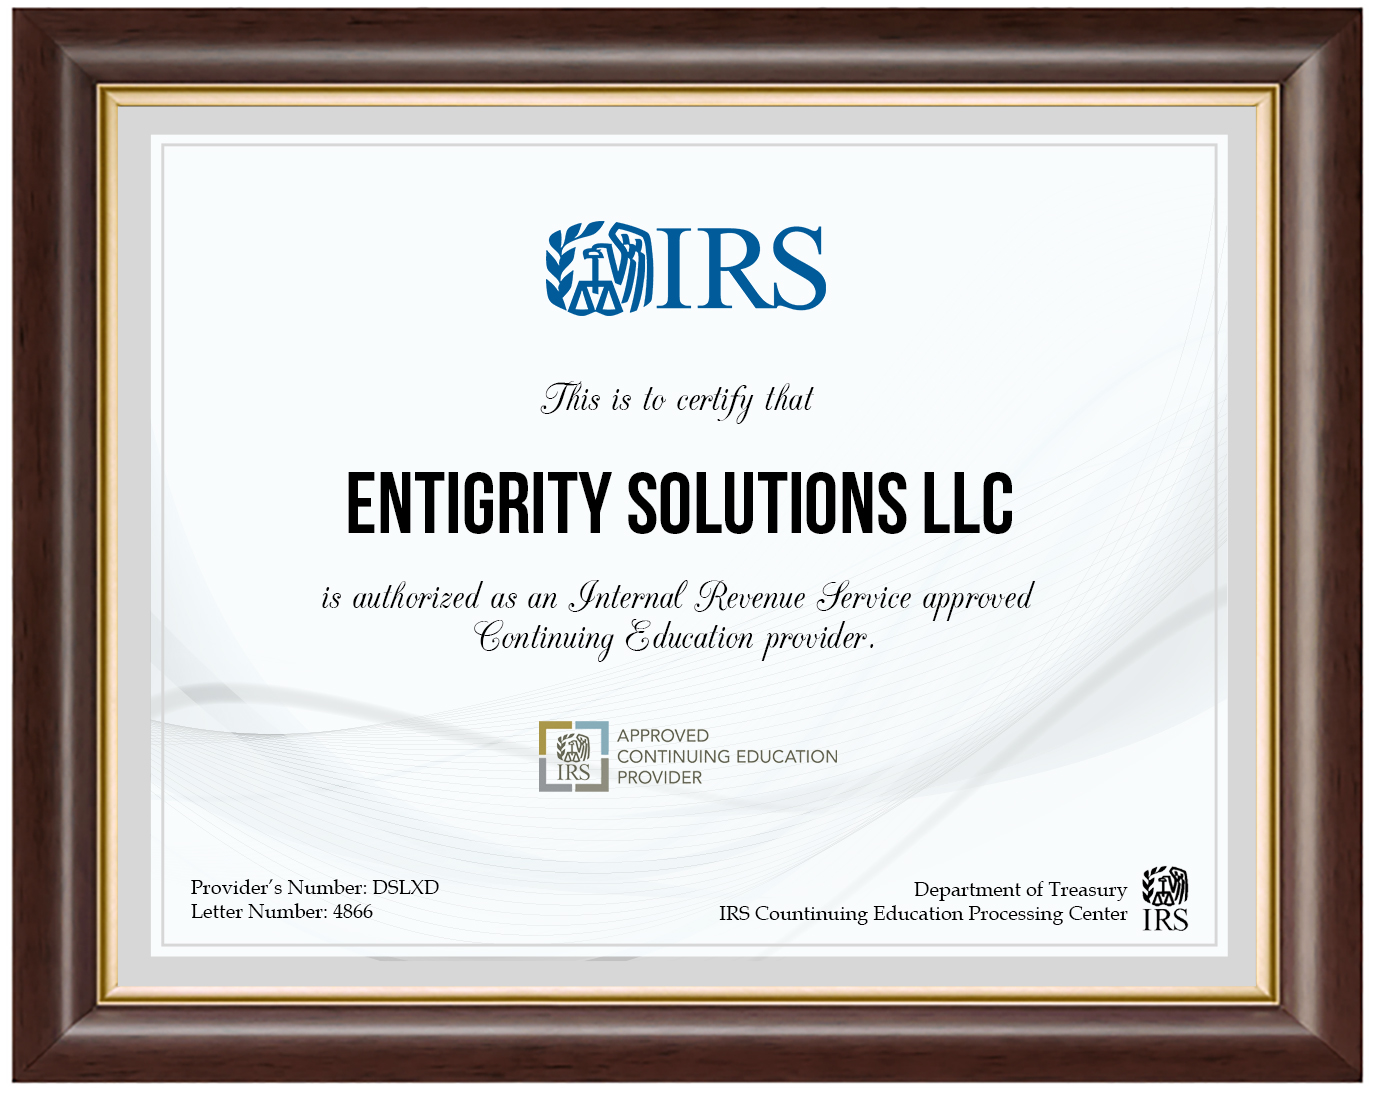 Entigrity IRS Certified